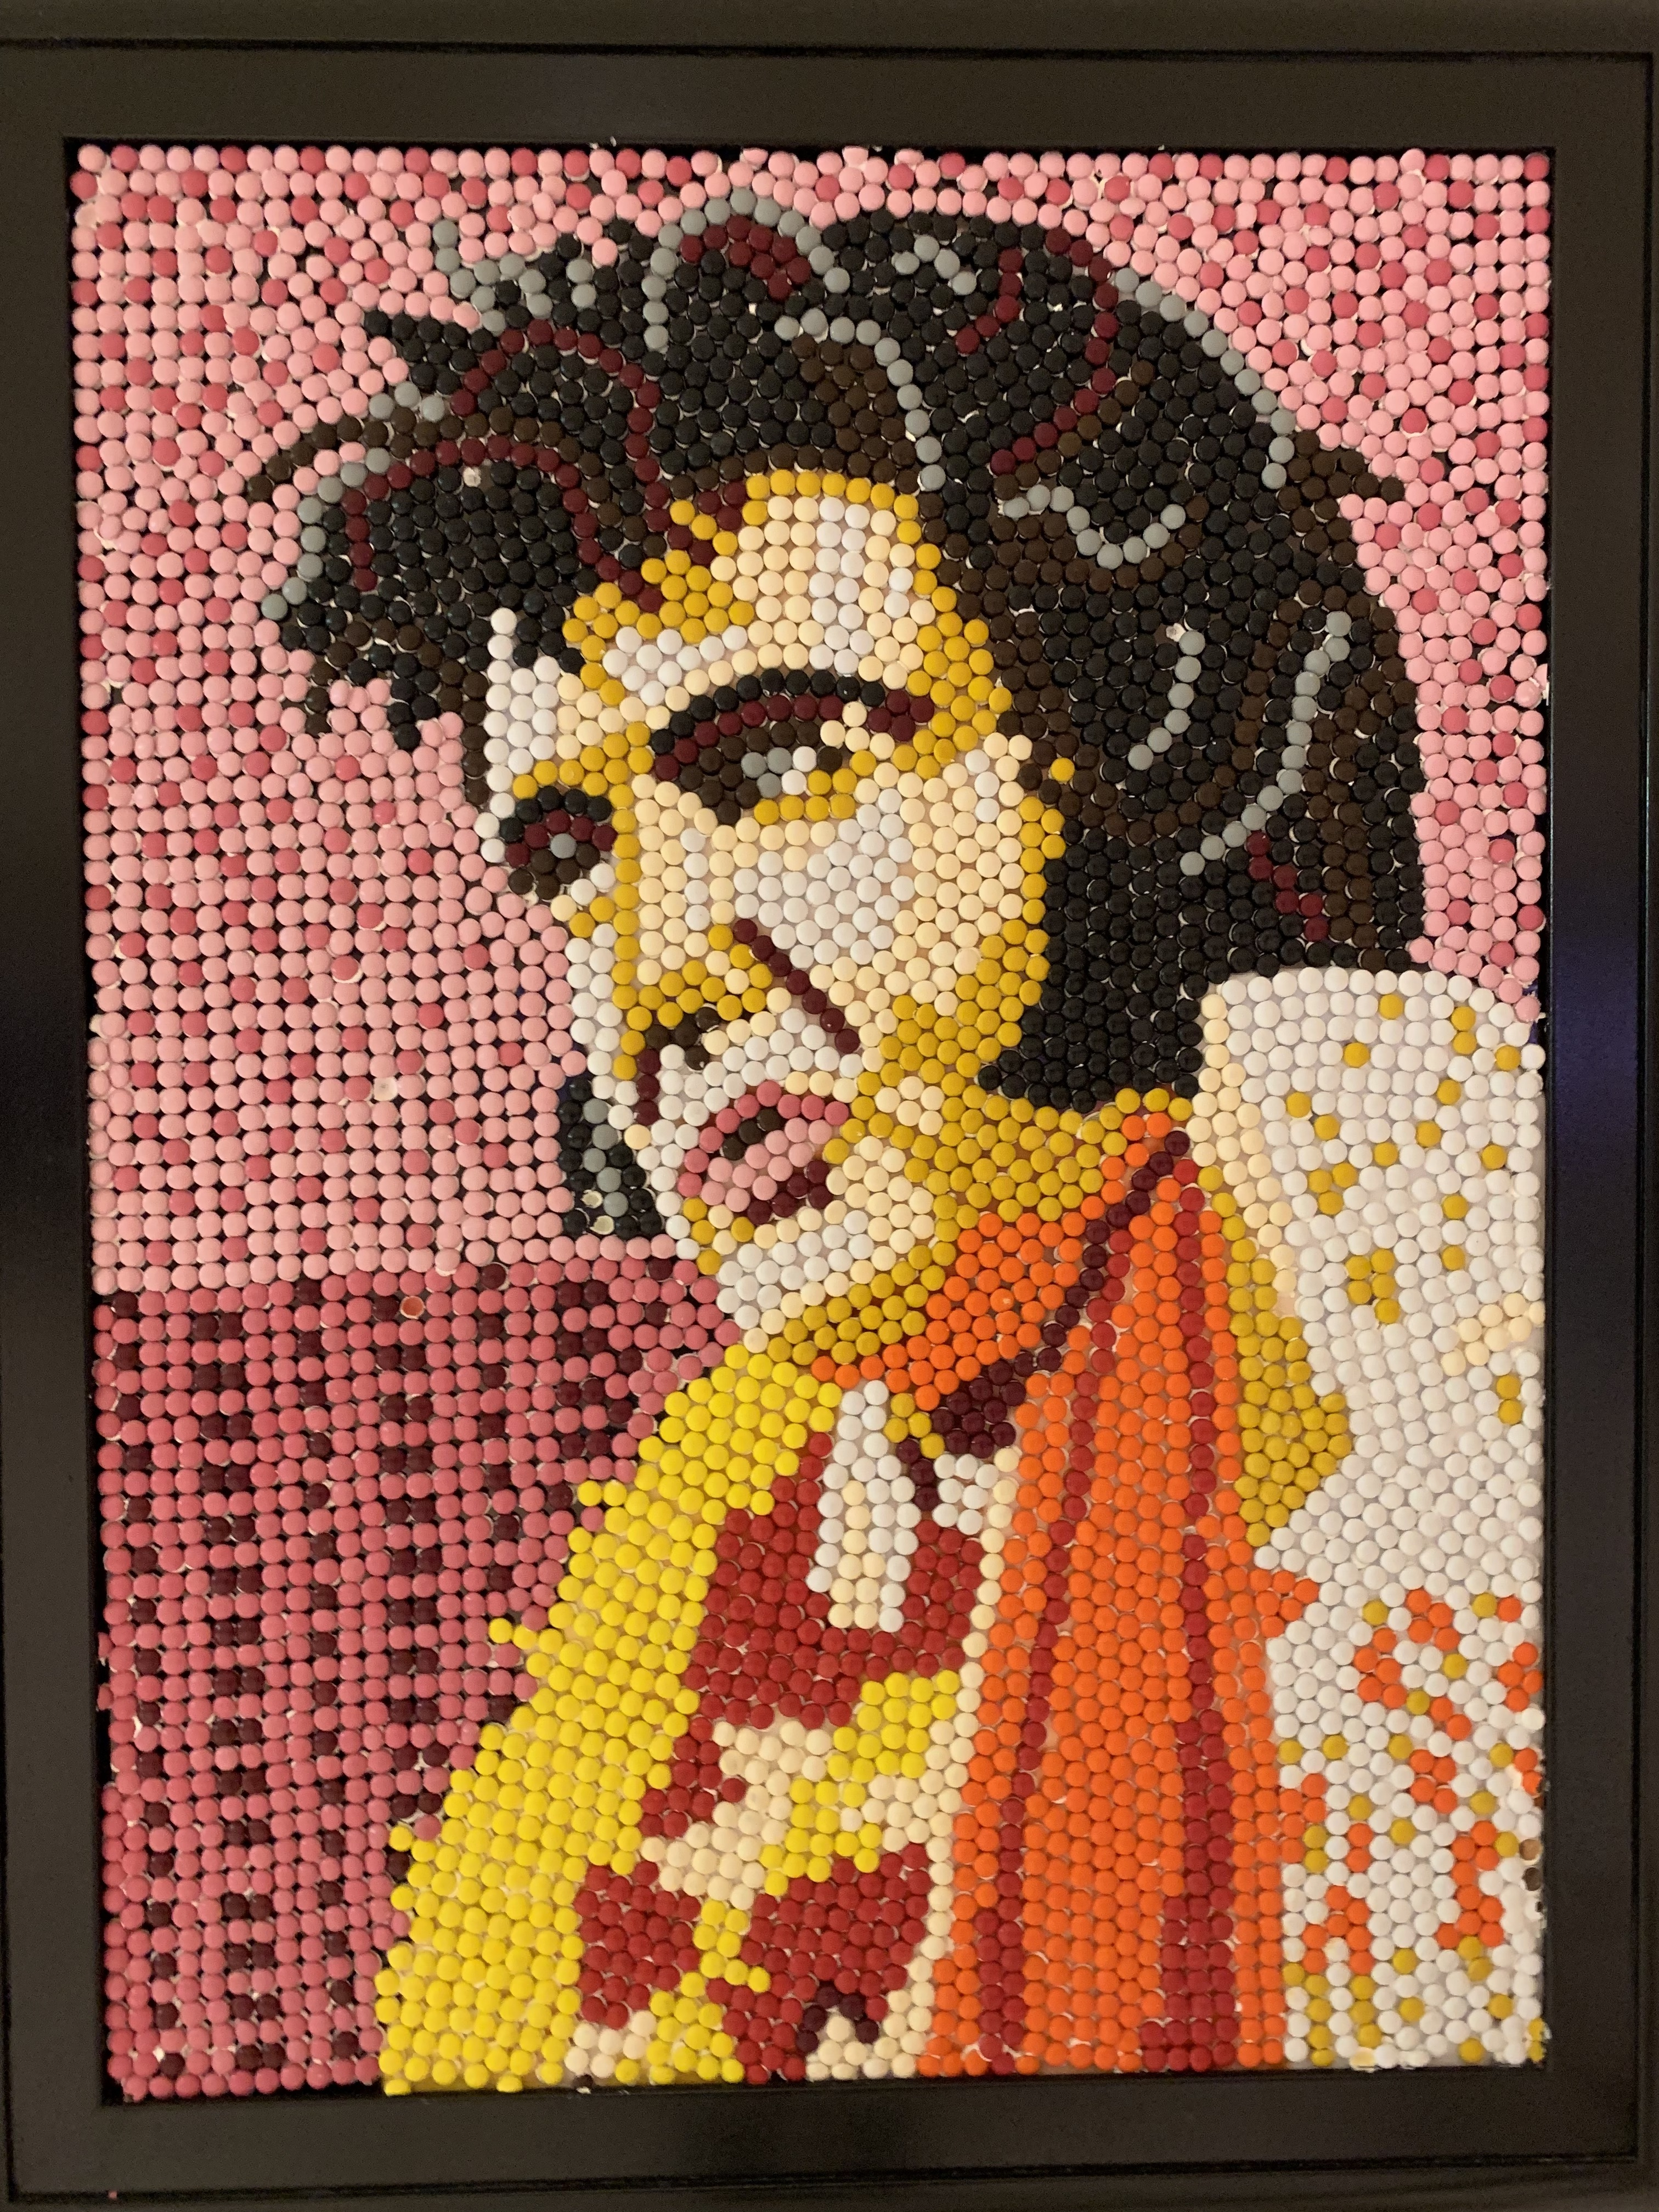 Elvis portrait, medium: M&Ms